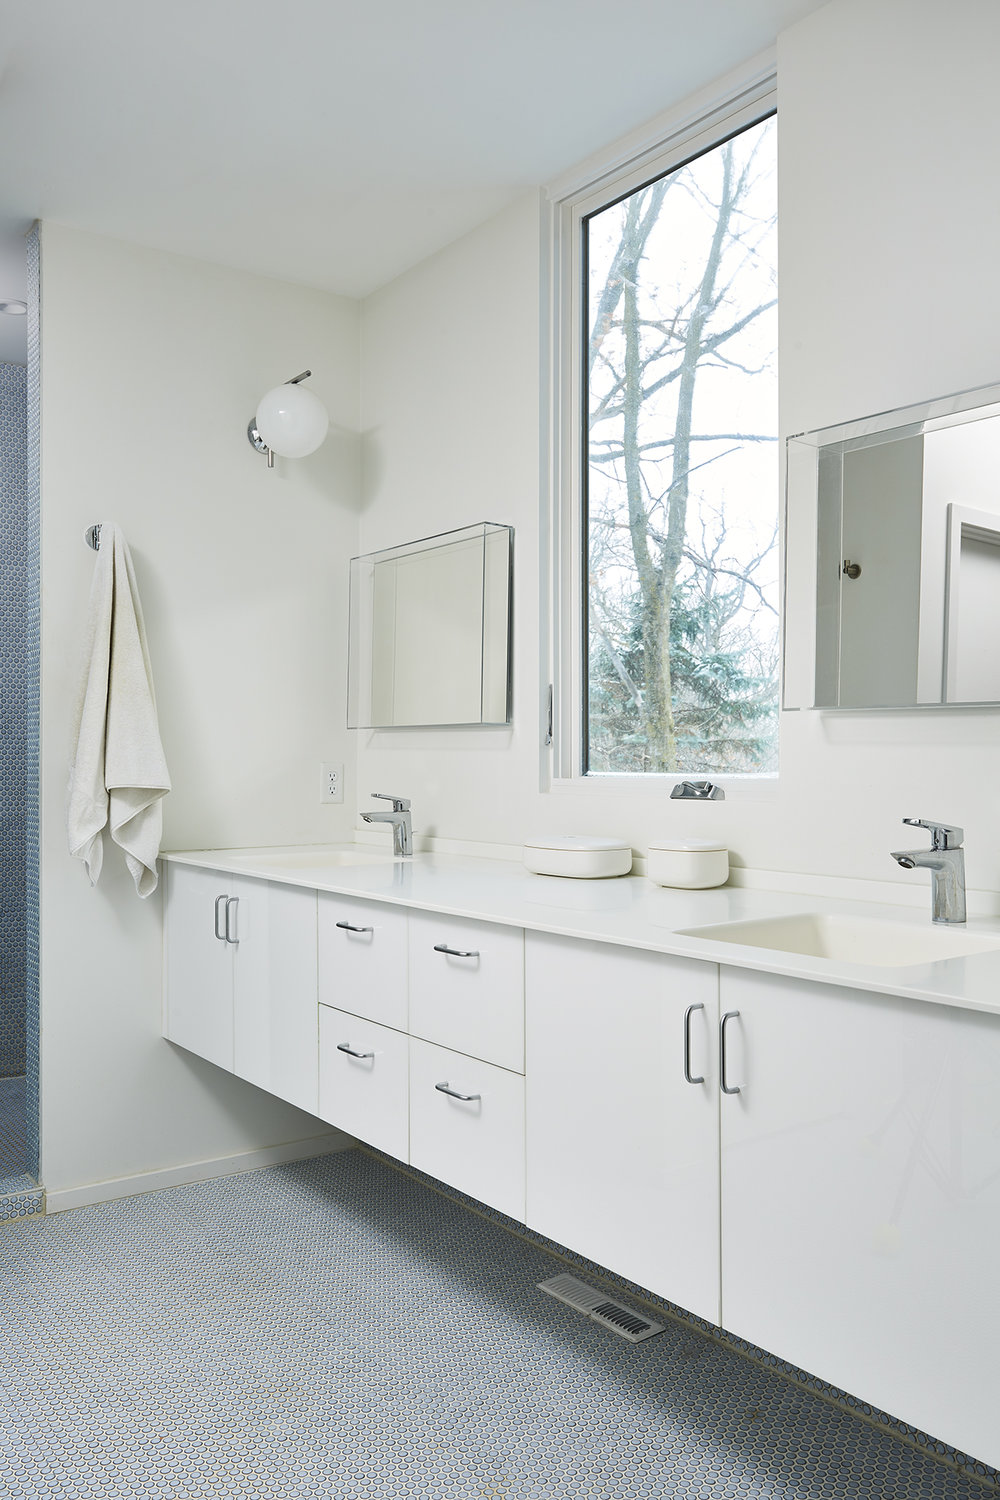 Custom floating master bathroom vanity with blue penny tile floors and shower surround